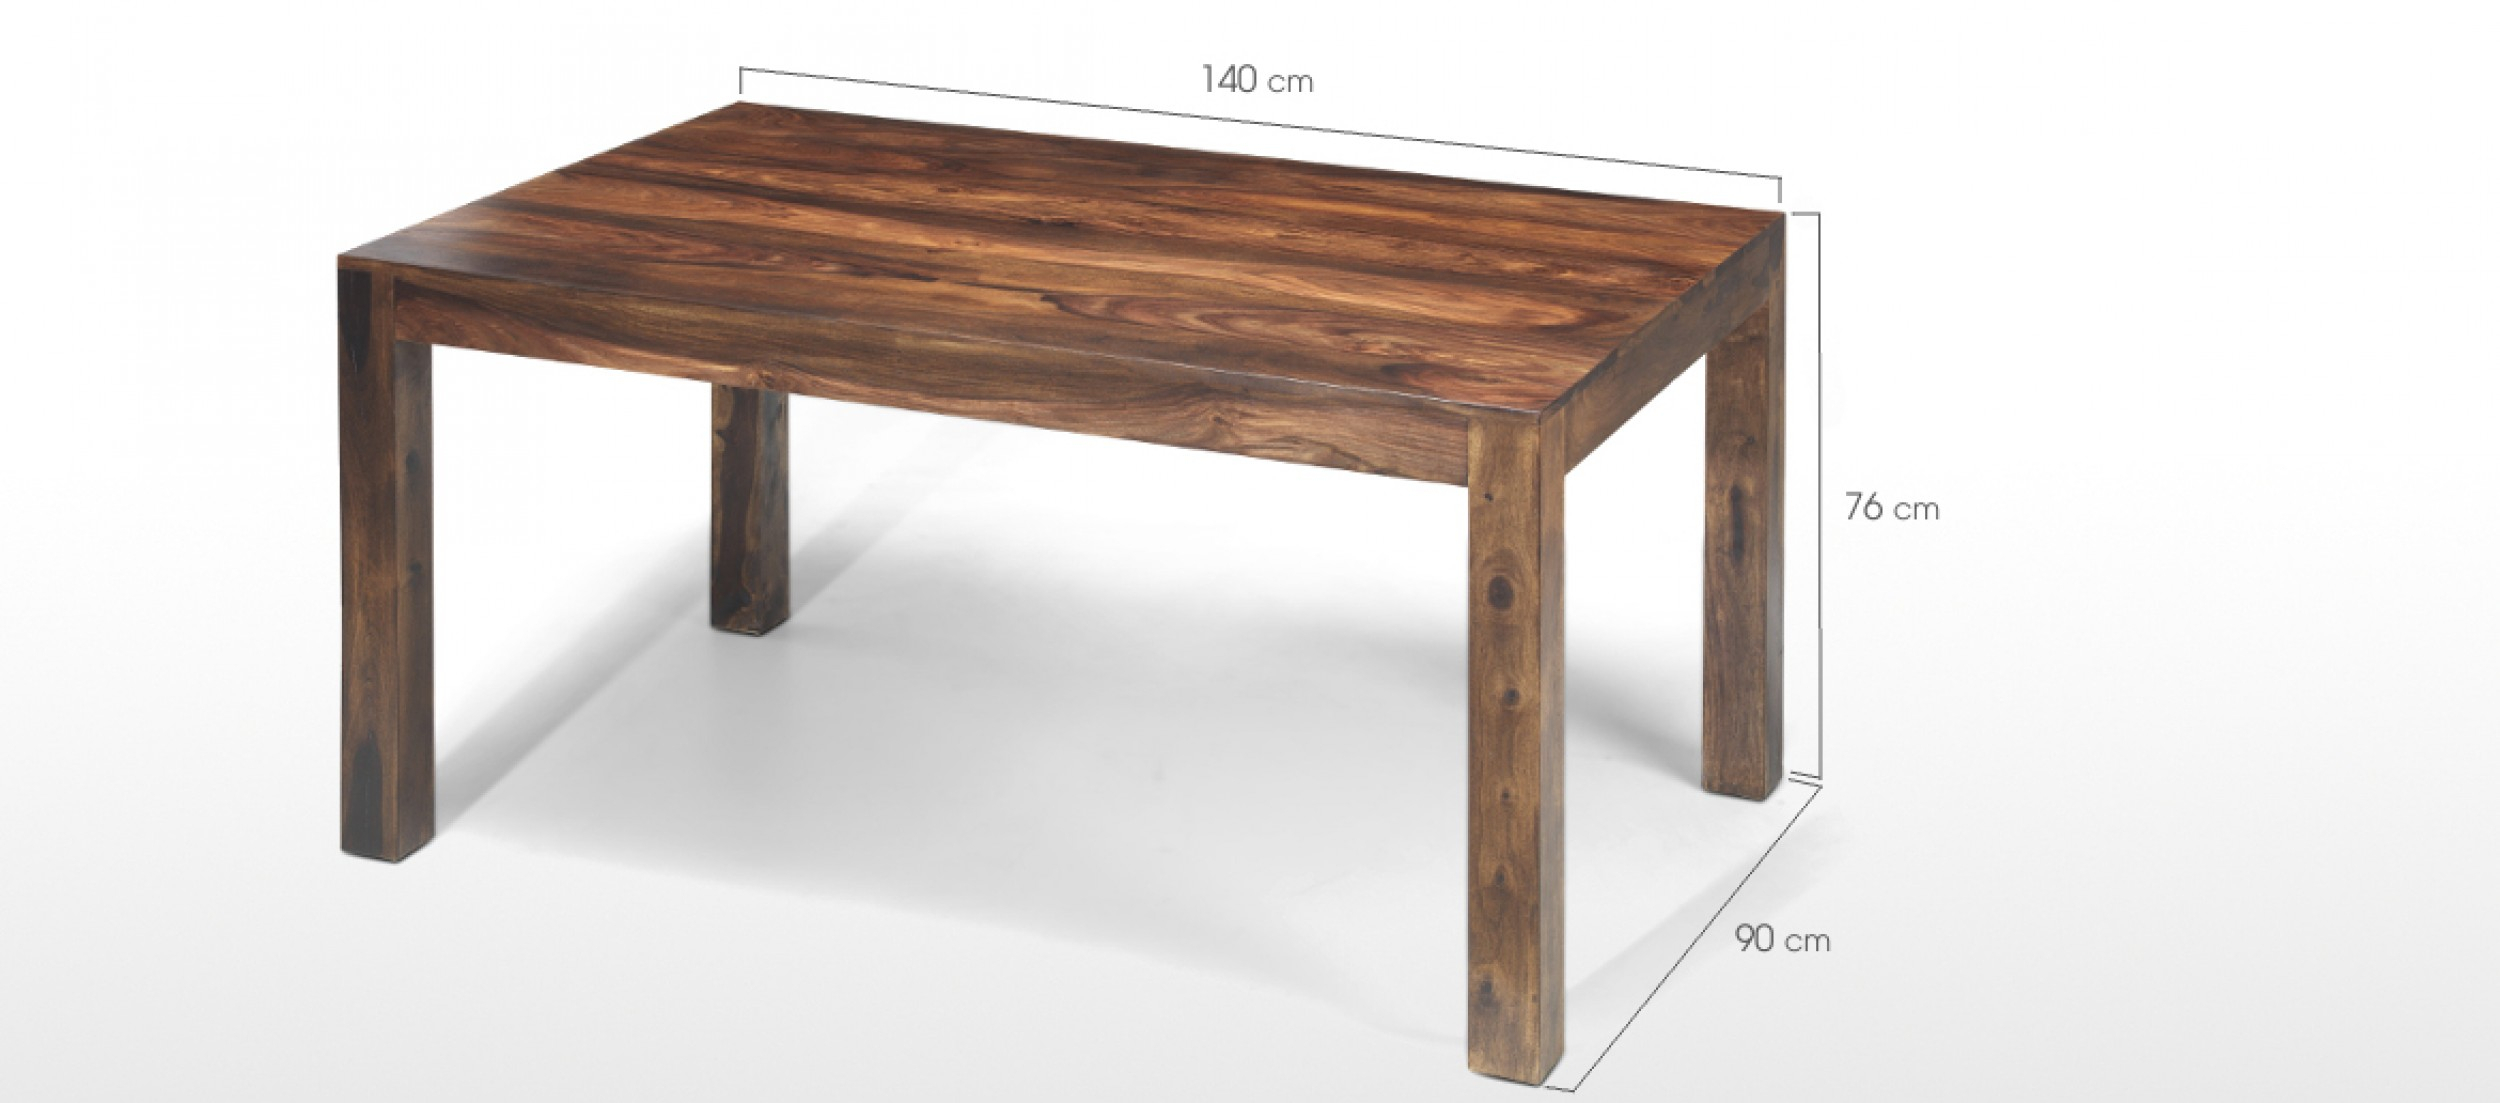 Cube Sheesham 140 Cm Dining Table And 4 Chairs | Quercus With Regard To Current Balfour 39'' Dining Tables (View 5 of 15)